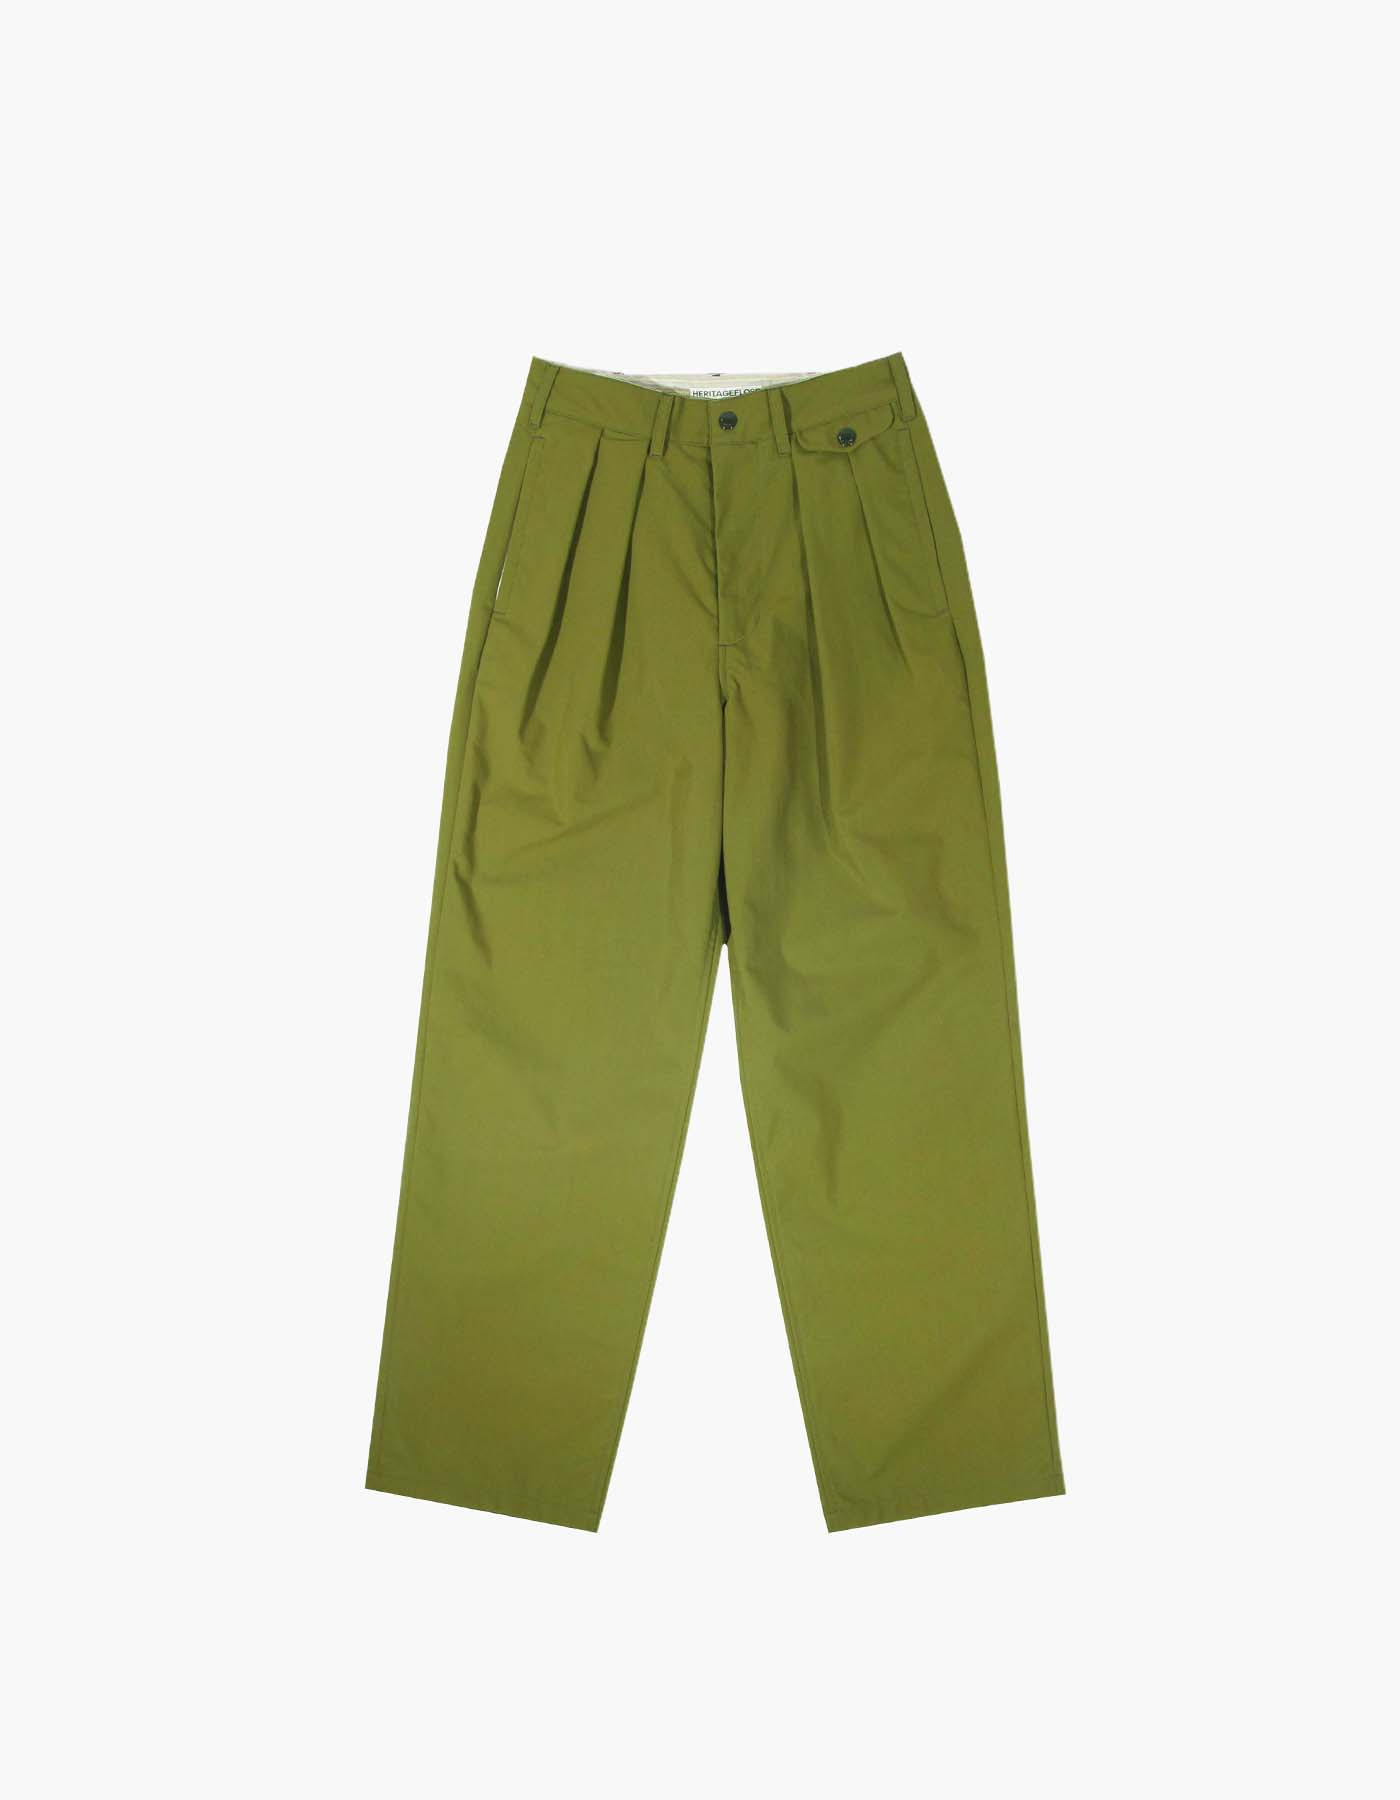 QUICK-DRYING NYLON CHINO PANTS (W) / KHAKI